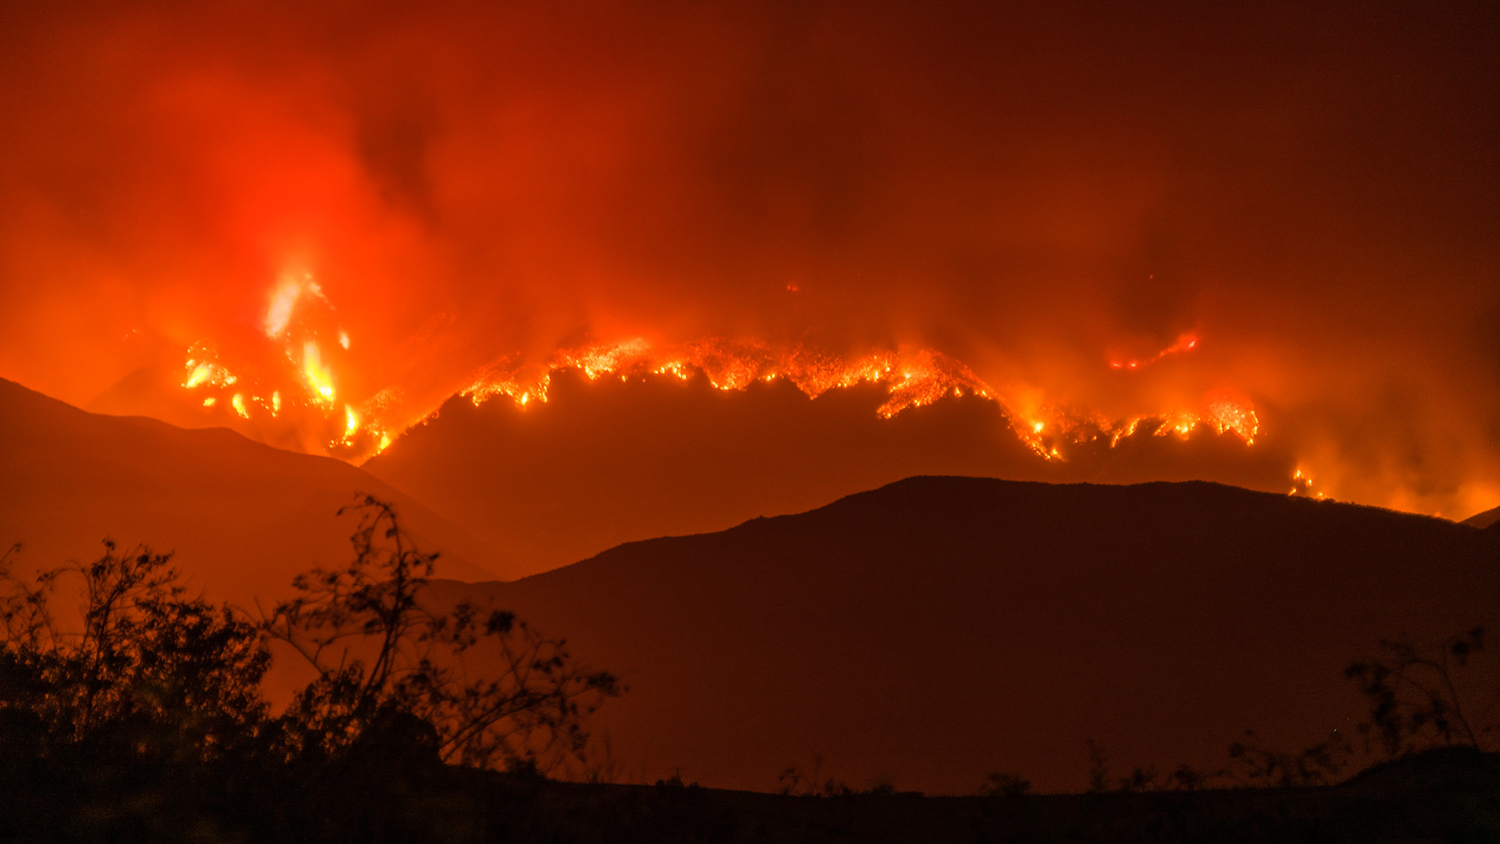 a wildfire in the hills of california